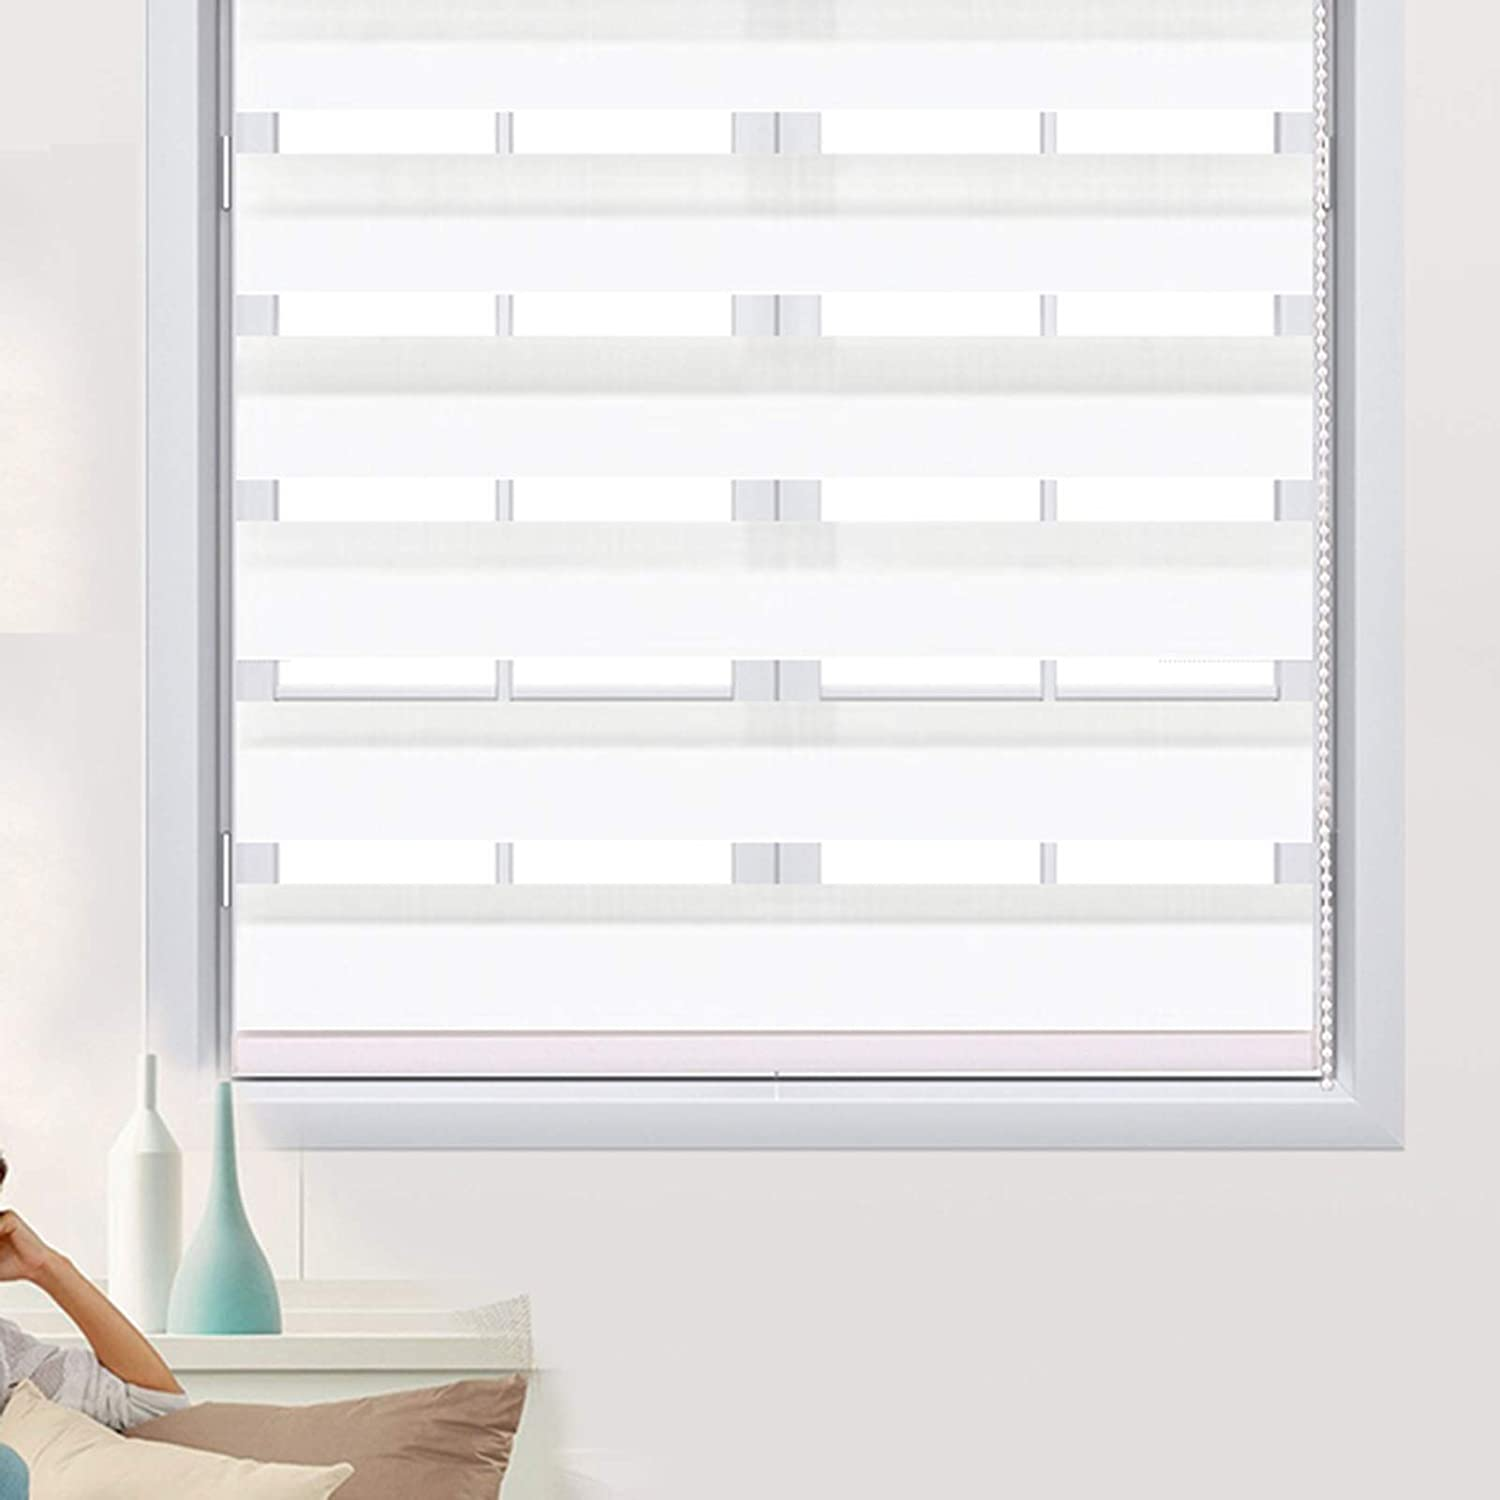 XYUfly20 Perforated Installation of New item Blackout Blinds Gauze Financial sales sale Roller